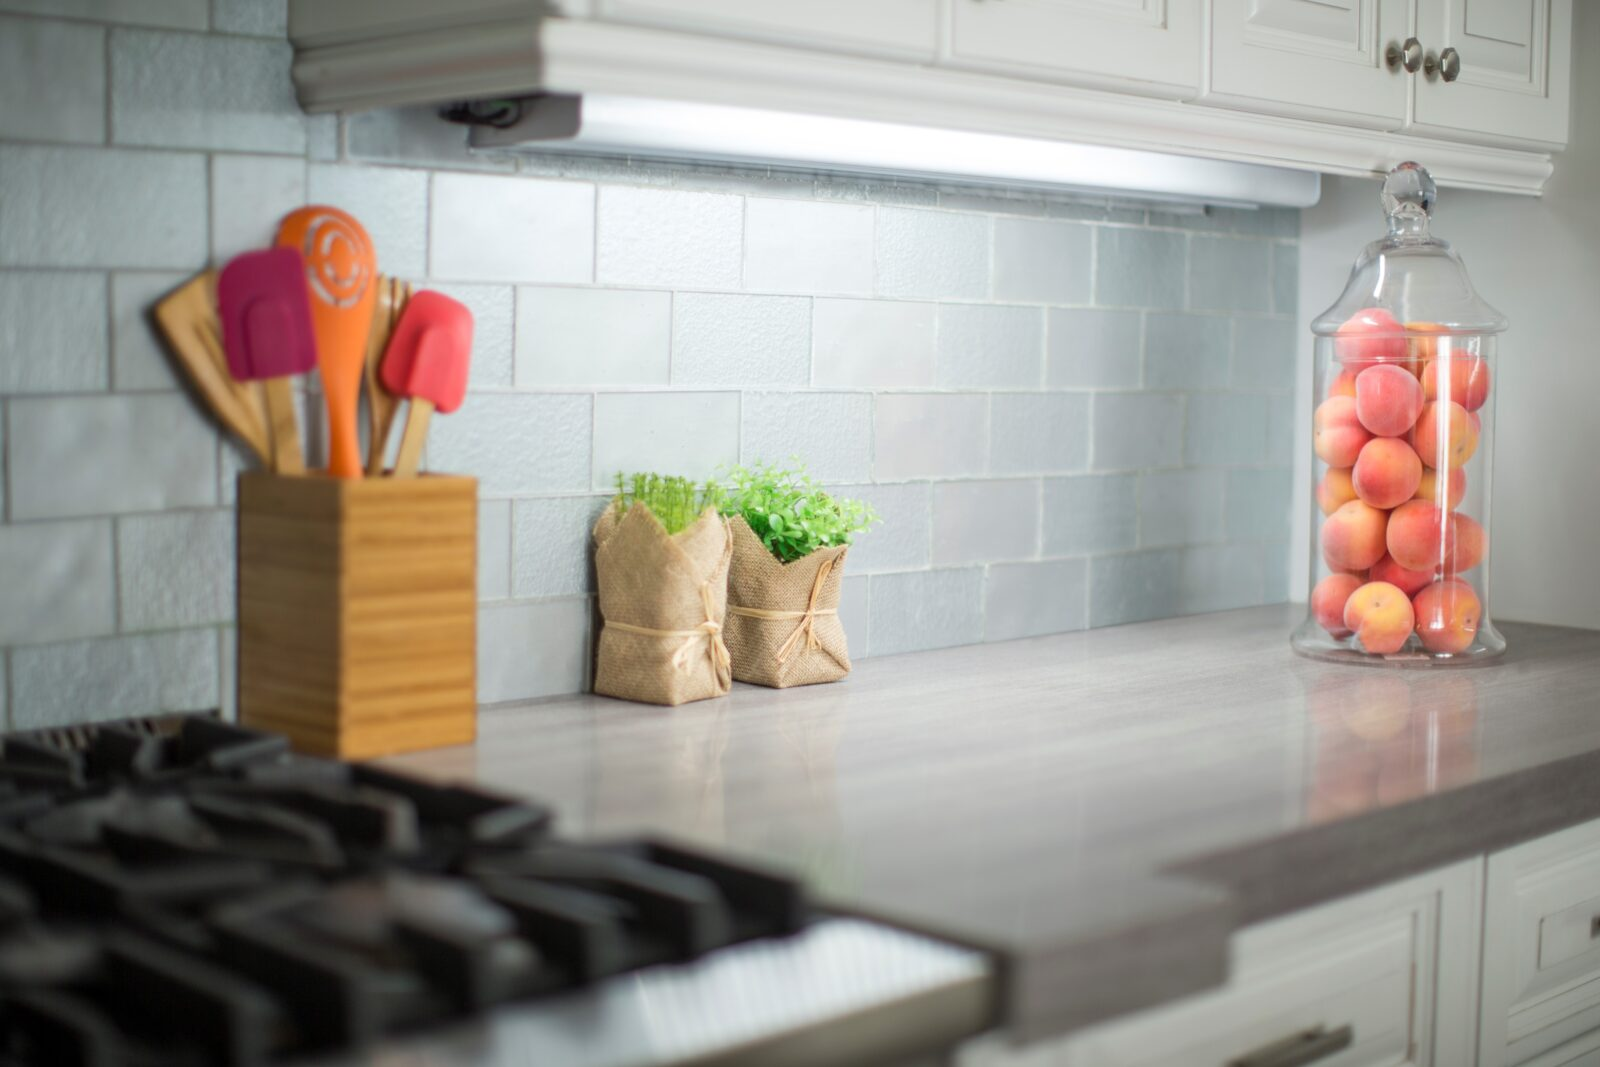 Exposed colorful kitchen utensils